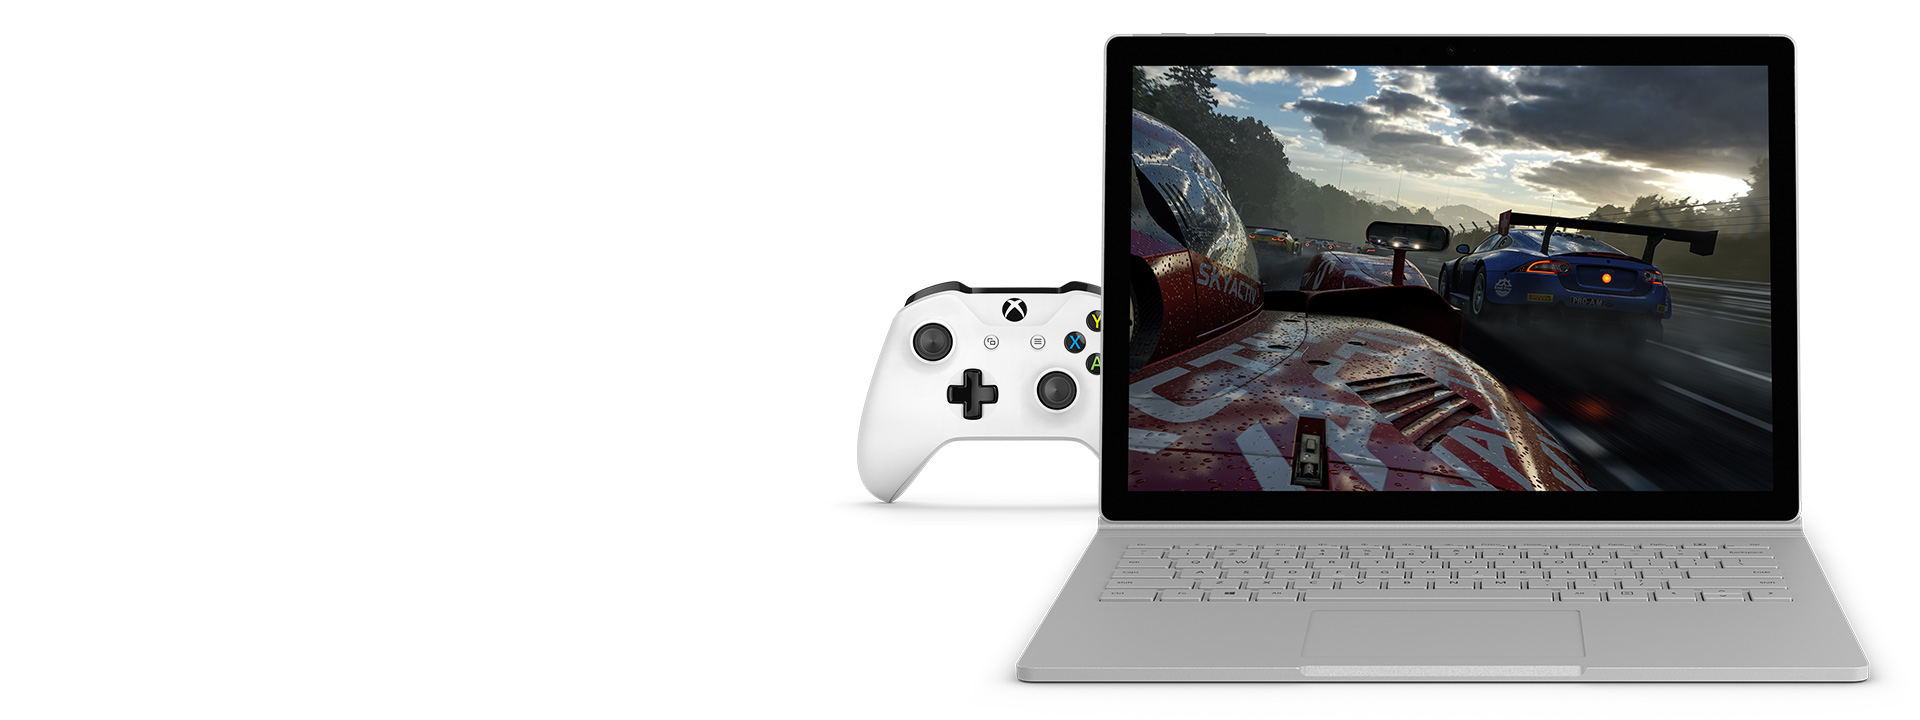 Gioco su Surface Book 2 con Xbox Wireless Controller